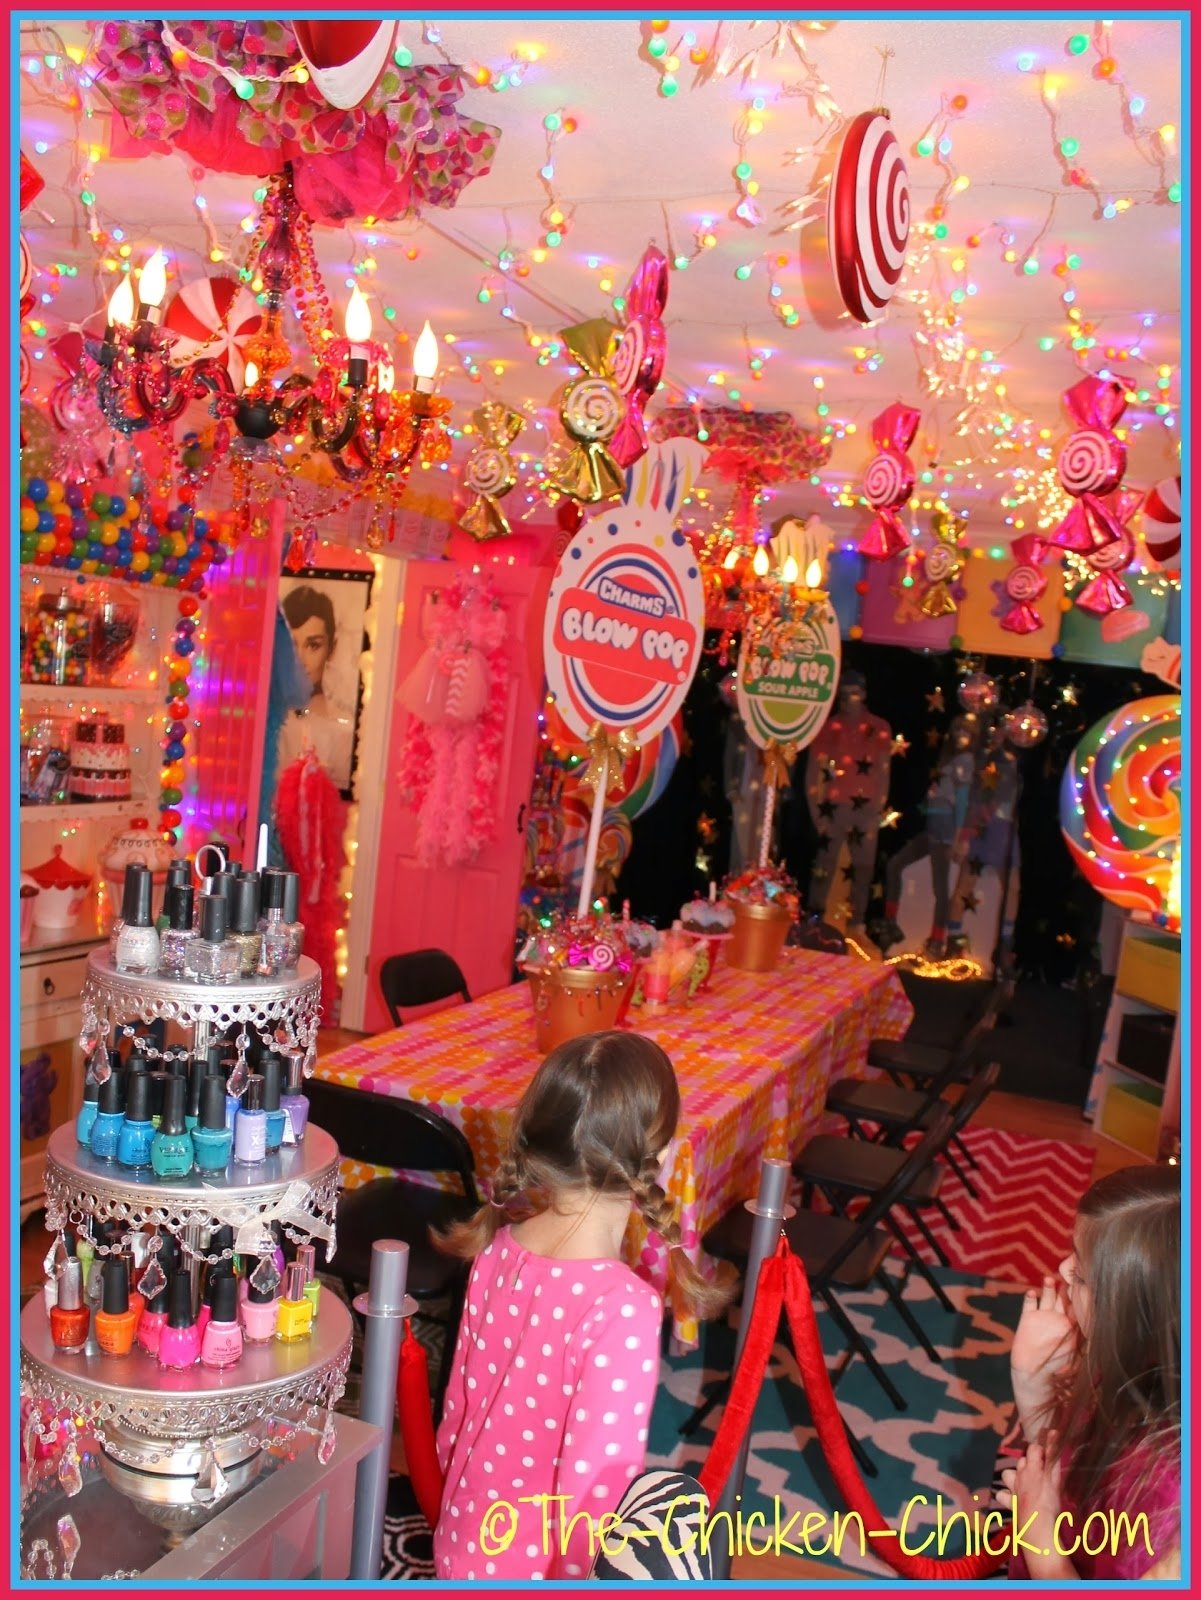 10 Stylish 11 Year Old Party Ideas spa birthday party ideas for 7 year olds pool design ideas 42